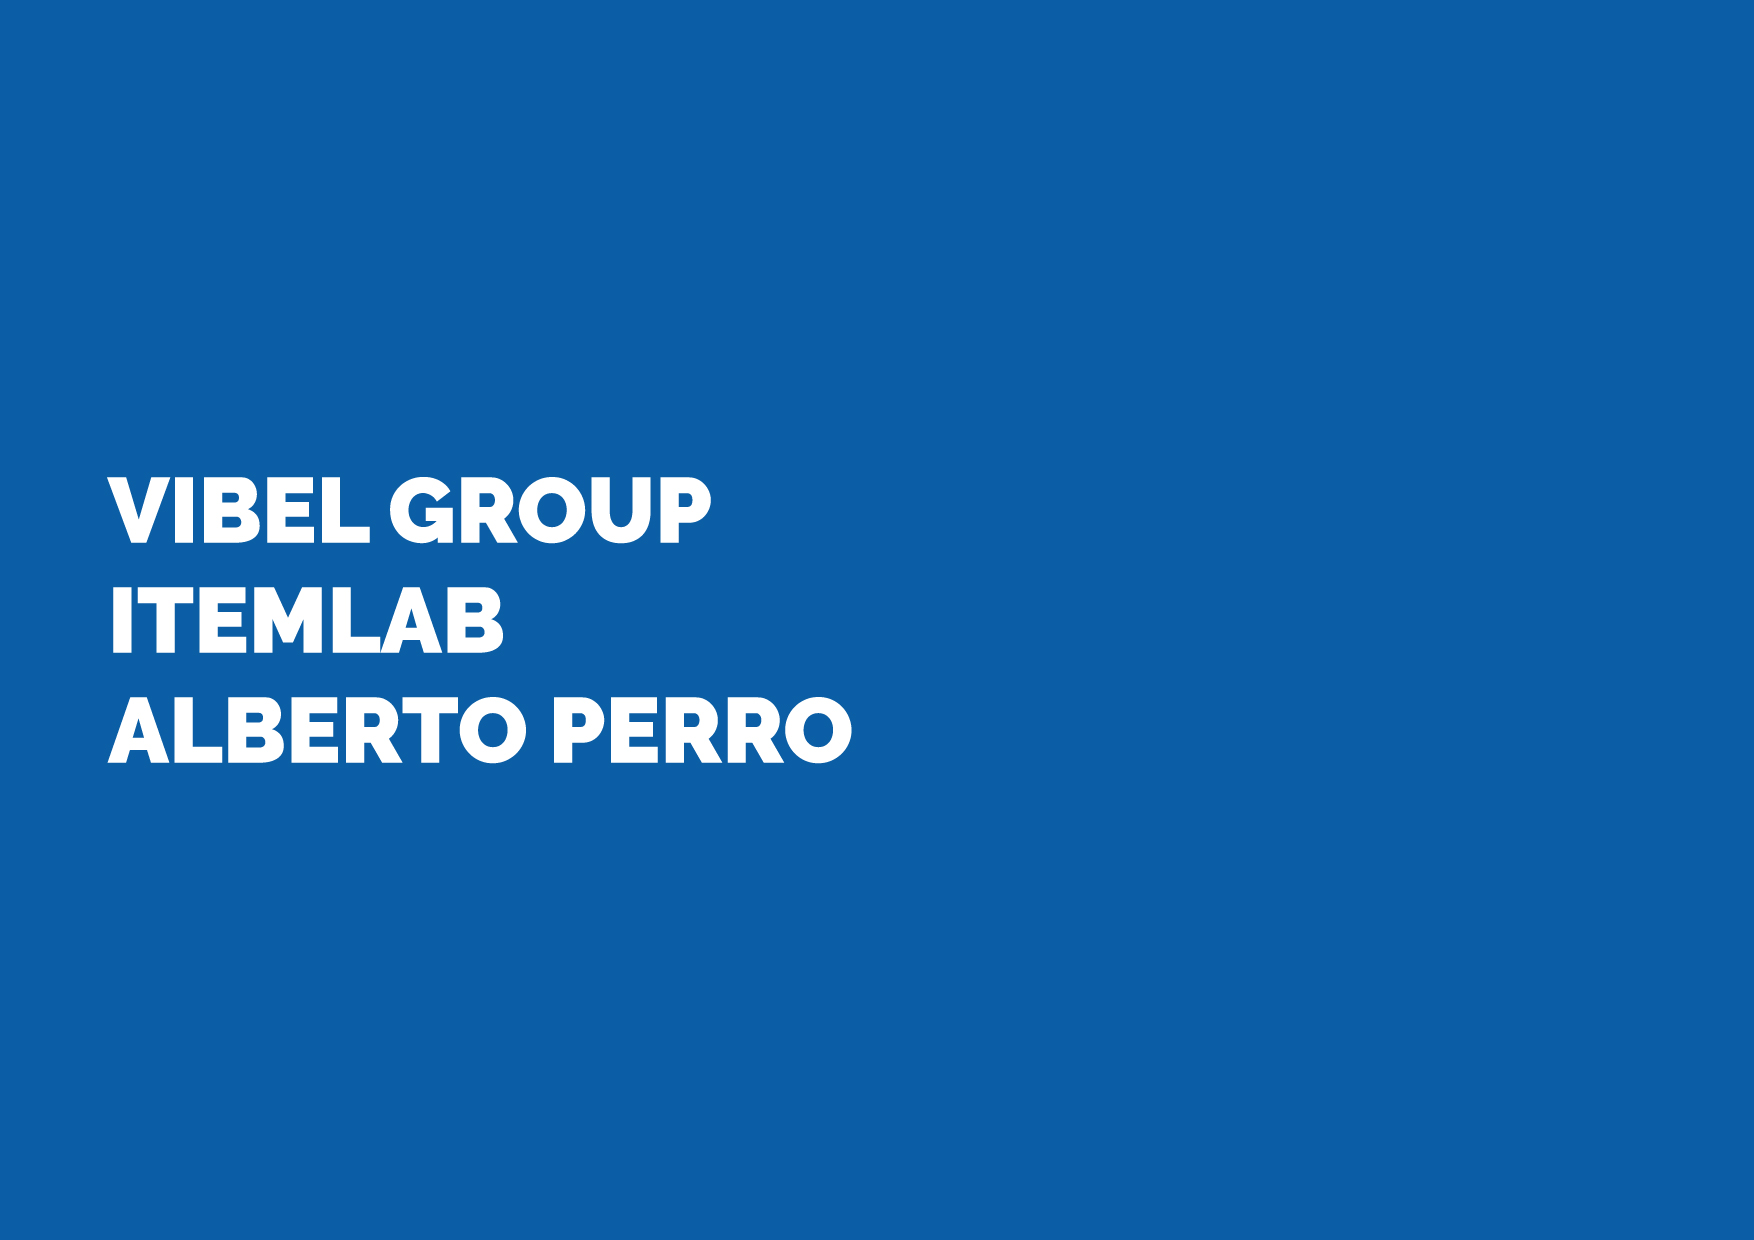 VIBEL GROUP / ITEMLAB / ALBERTO PERRO